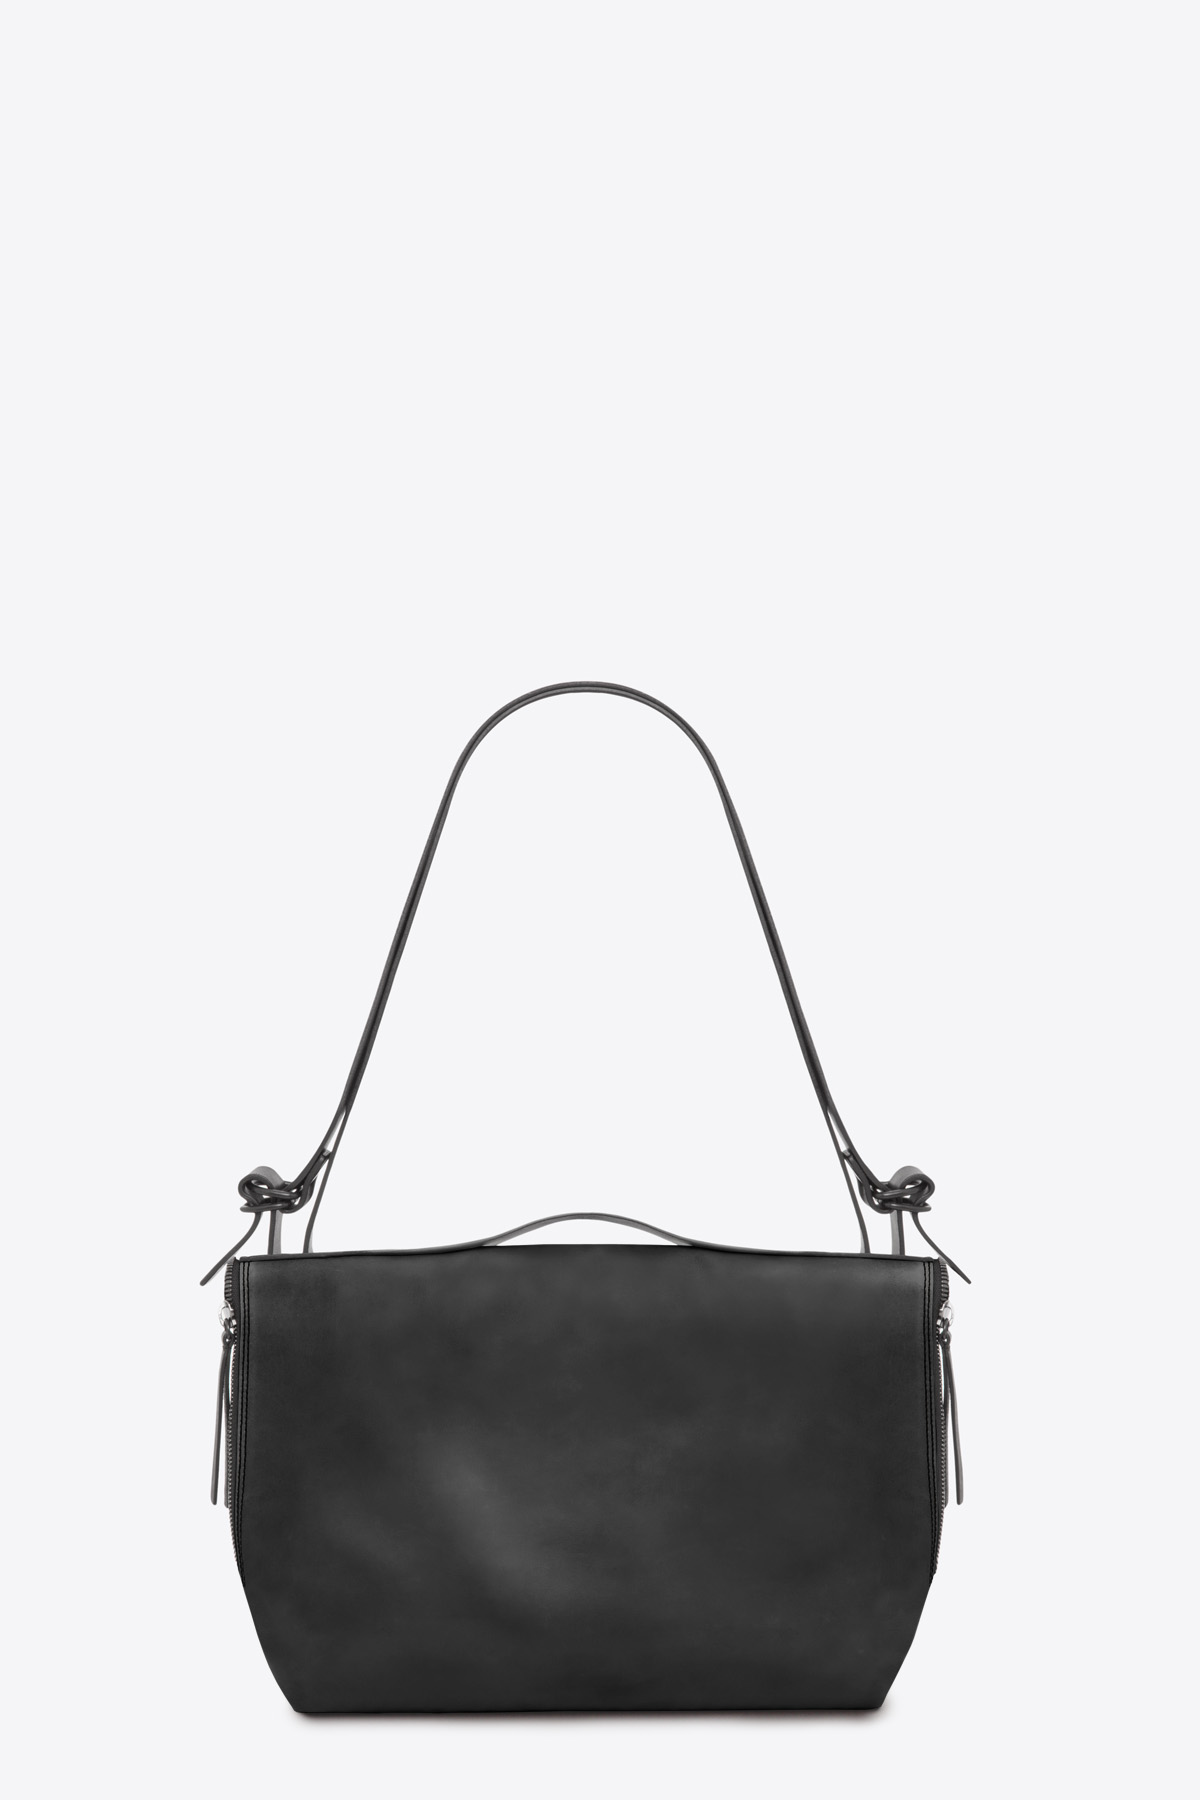 dclr008l-messenger-a1-black-back